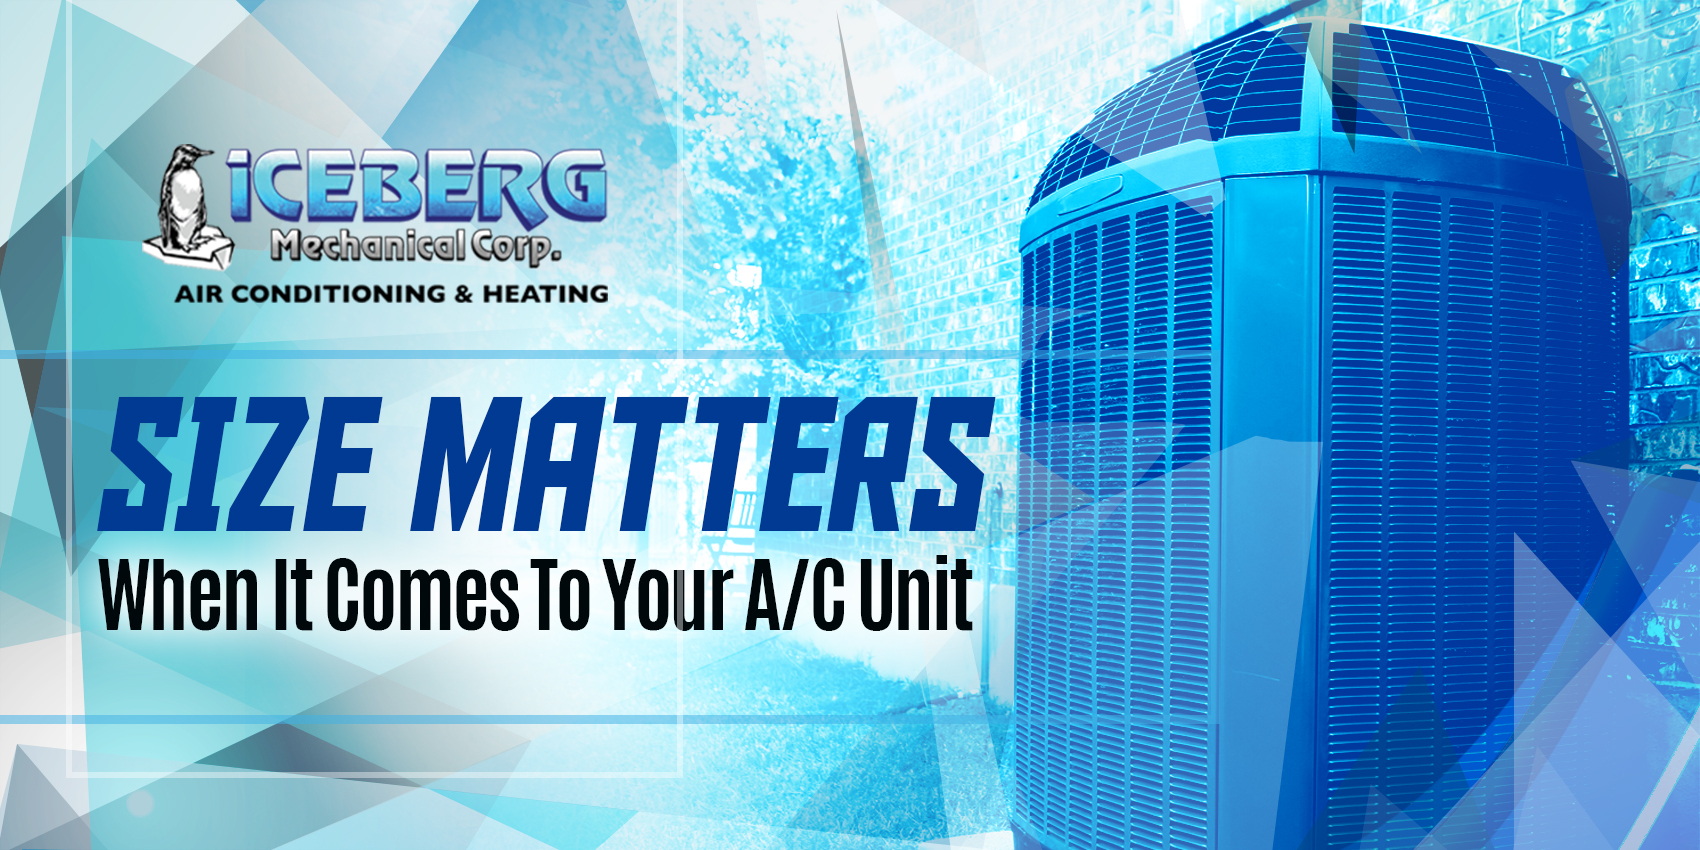 Size Matters When It Comes To Your A/C Unit